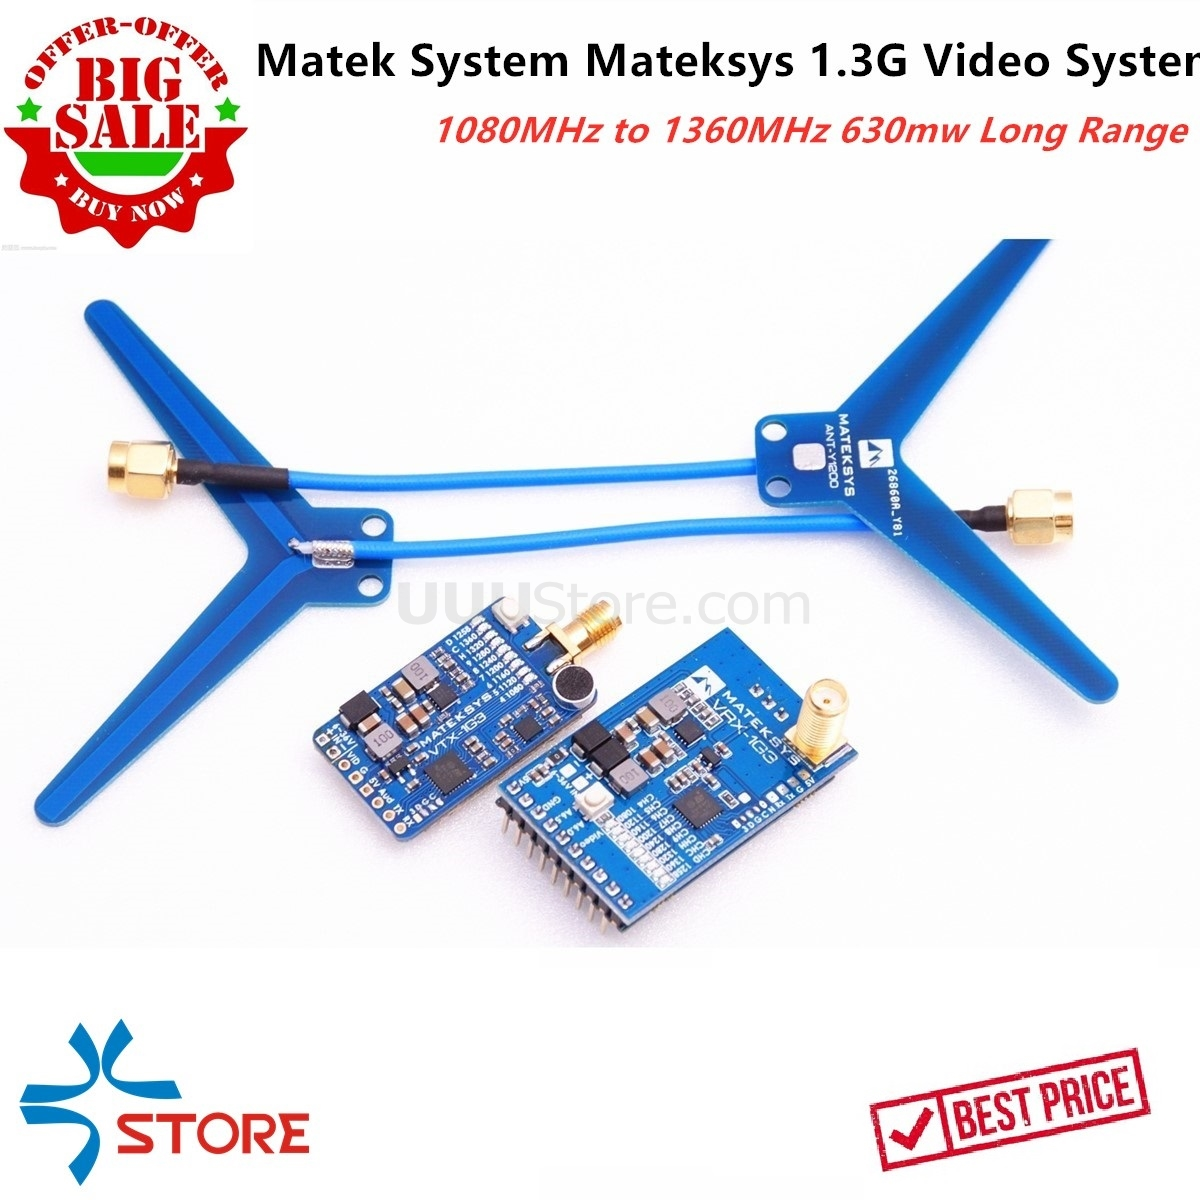 40KM Long Range Matek System Mateksys VRX-1G3 VTX-1G3 1.3GHz FPV 2CH-9CH 630mW Video Transmitter Wid Band Video Receiver